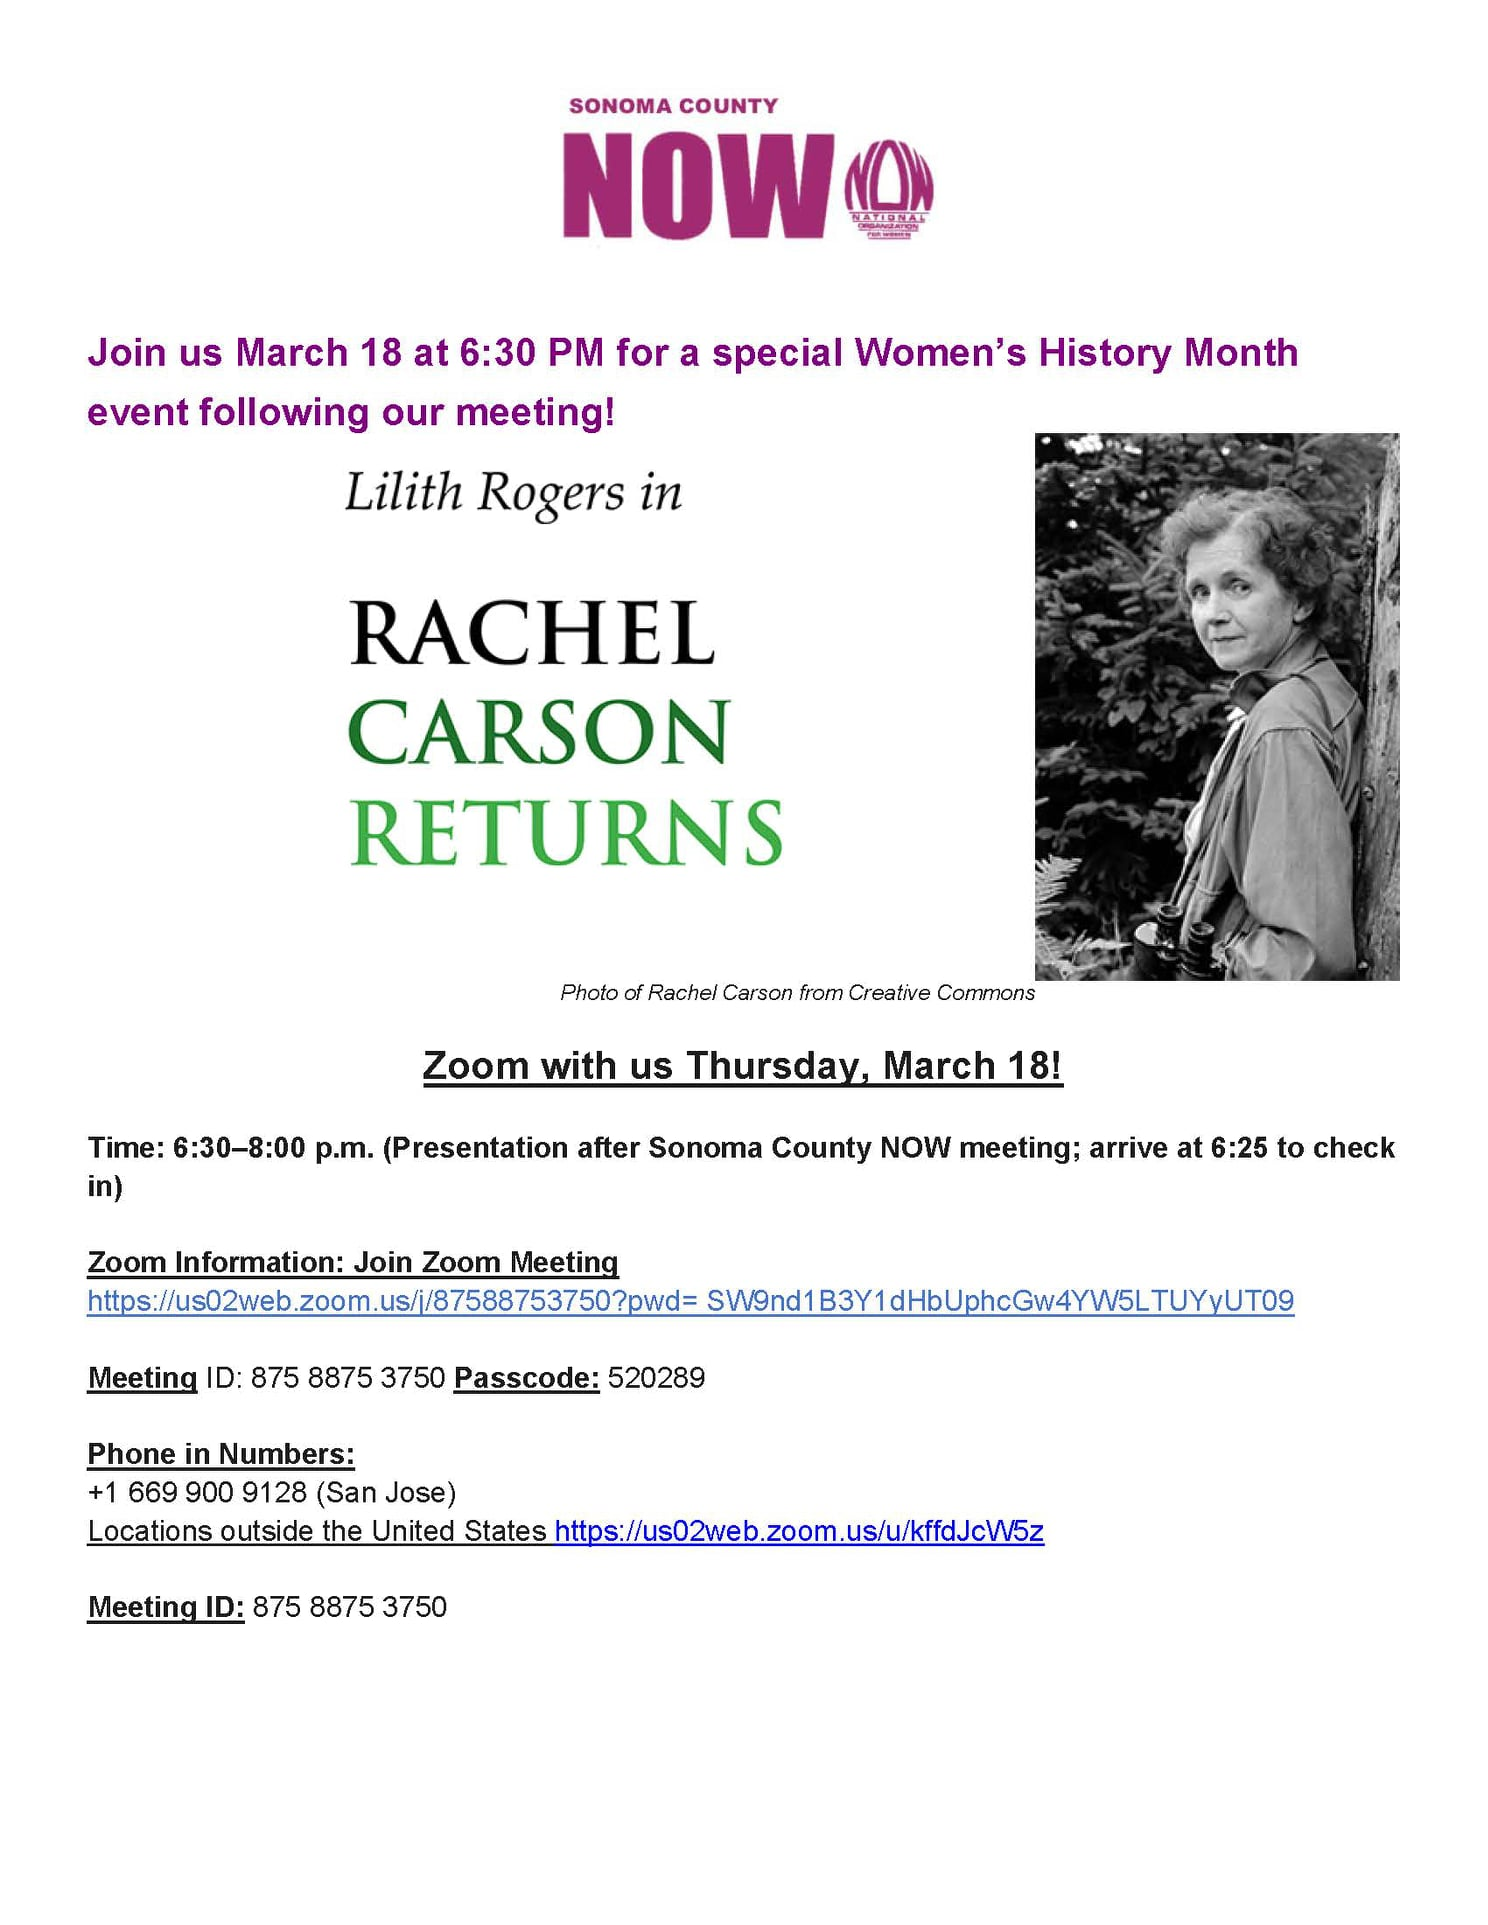 NOW Meeting March 18, 2021 Rachel Carson presentation by Liilth Rogers